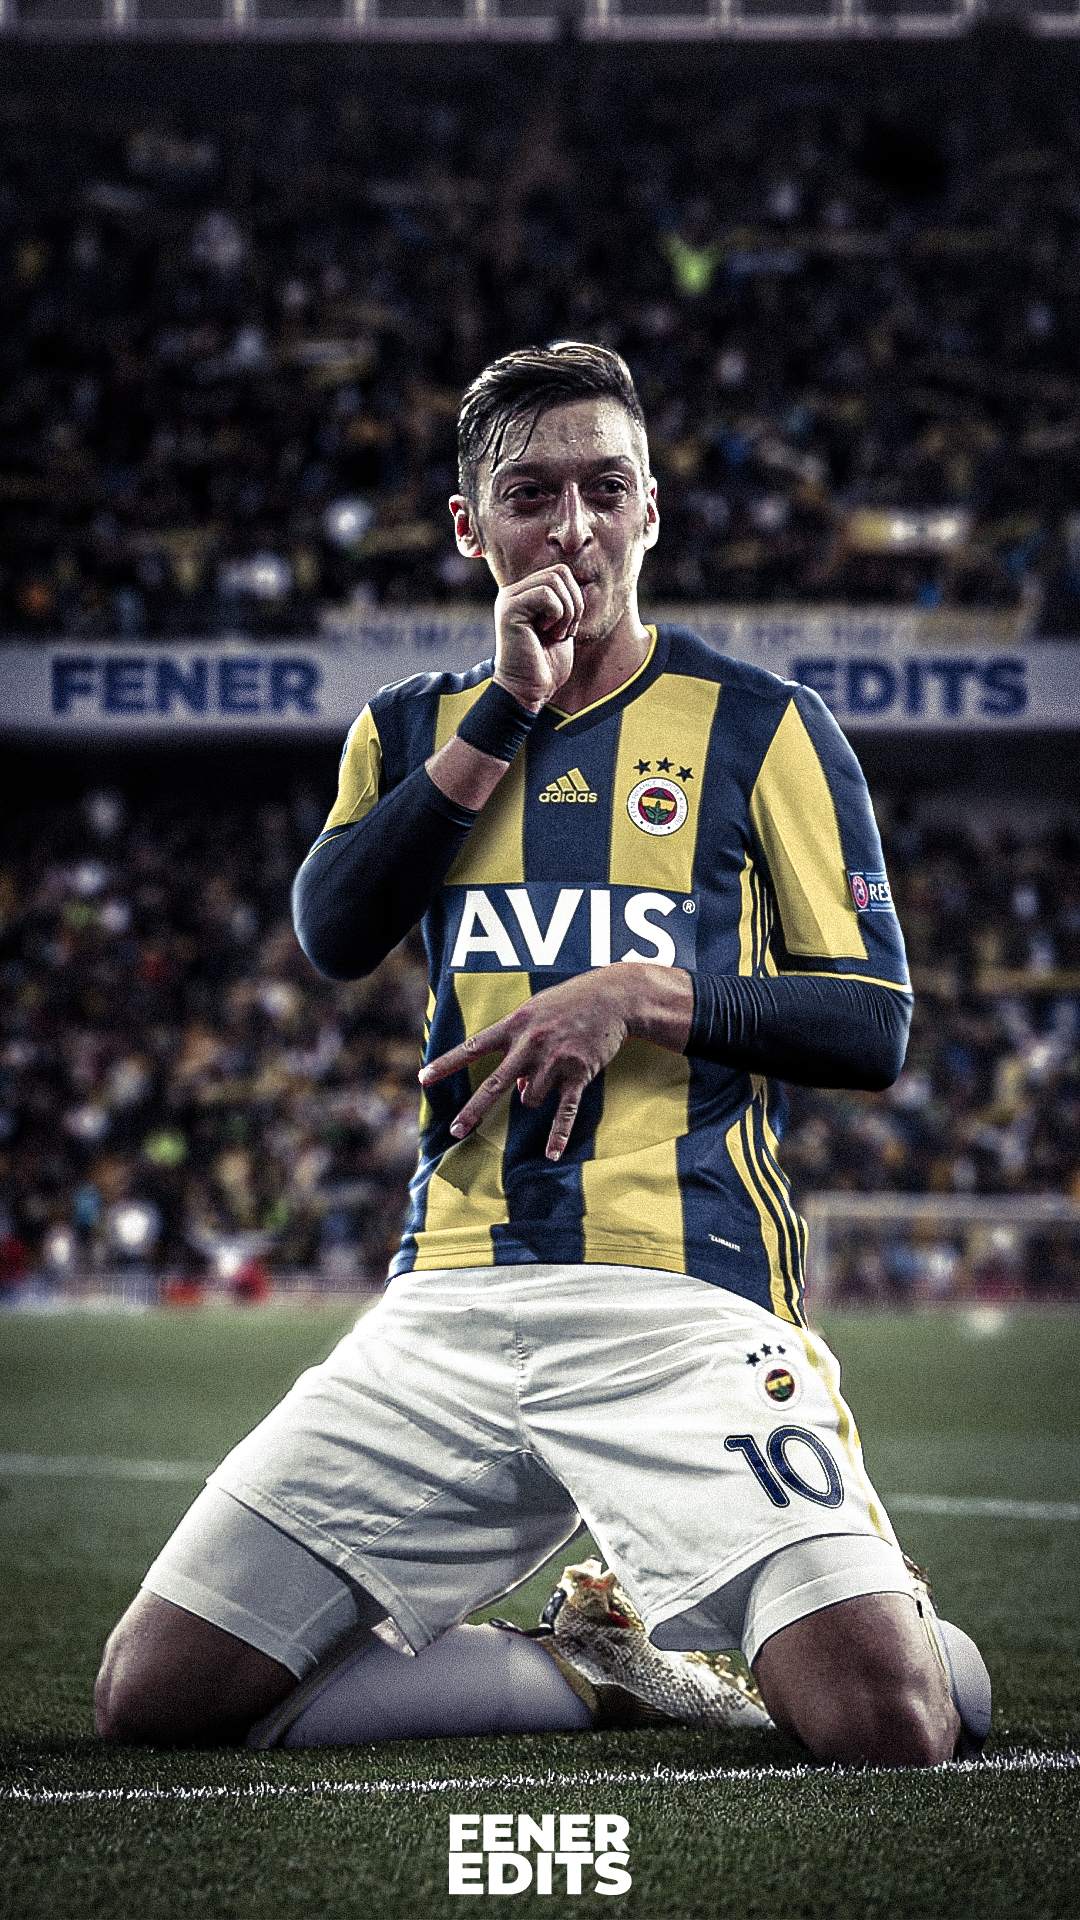 Mesut Ozil Fenerbahce Wallpaper On Behance